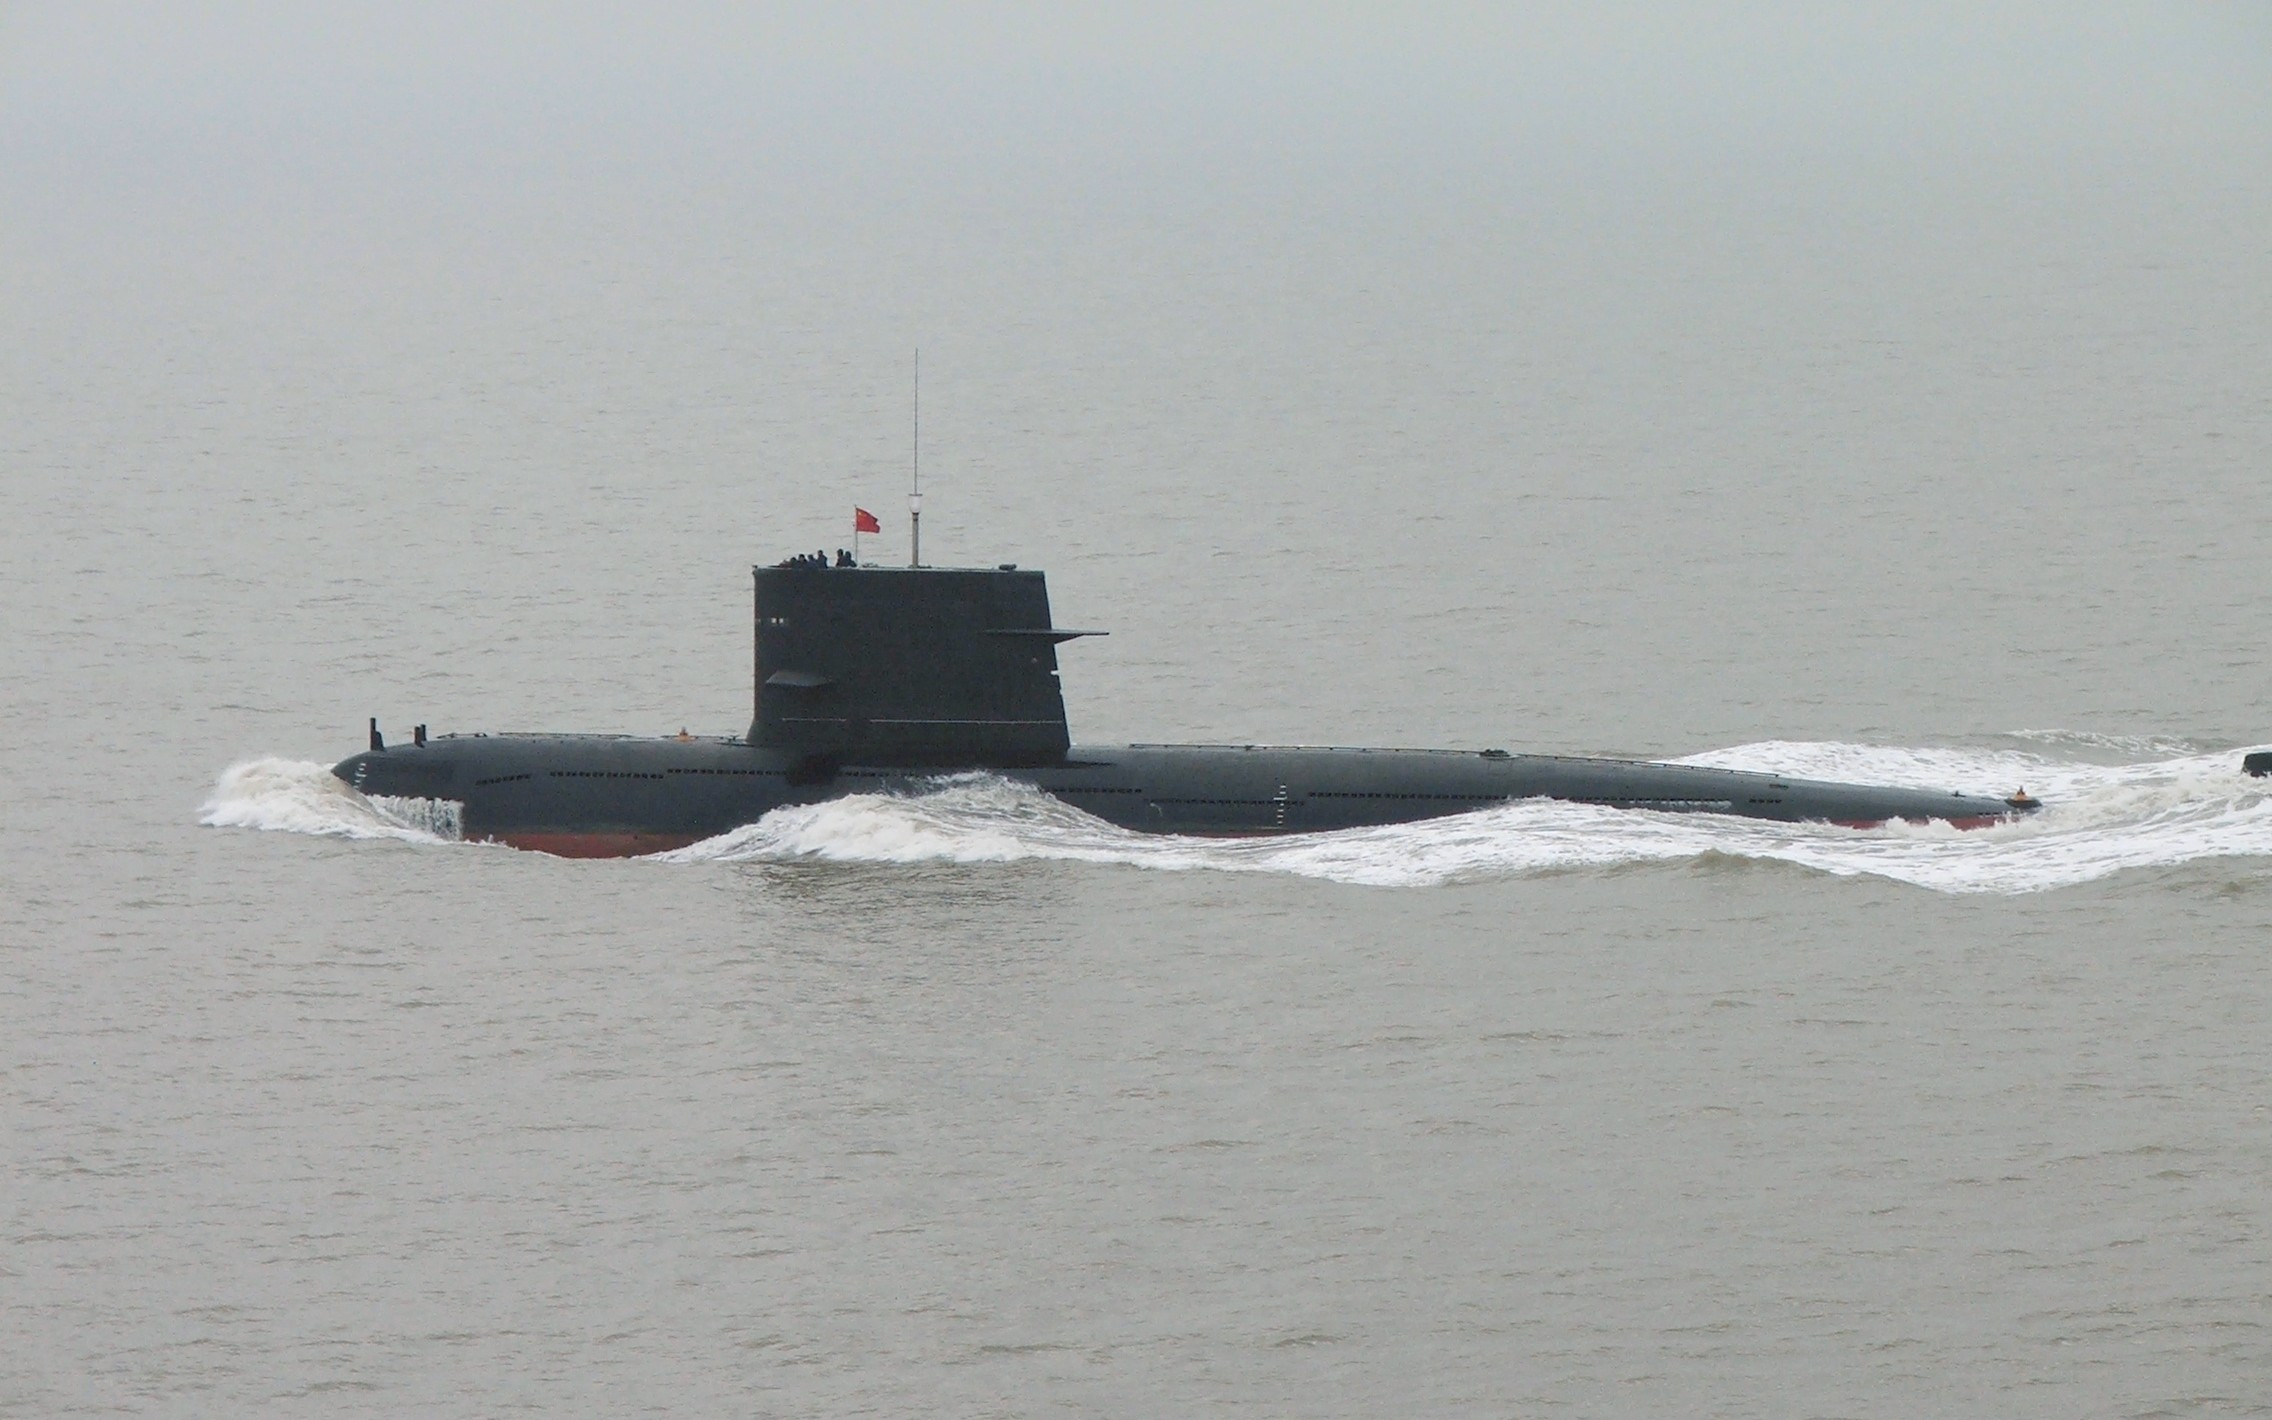 A Type 039 diesel-electric submarine of the PLAN. The newer Type 039A is based on the Type 039.